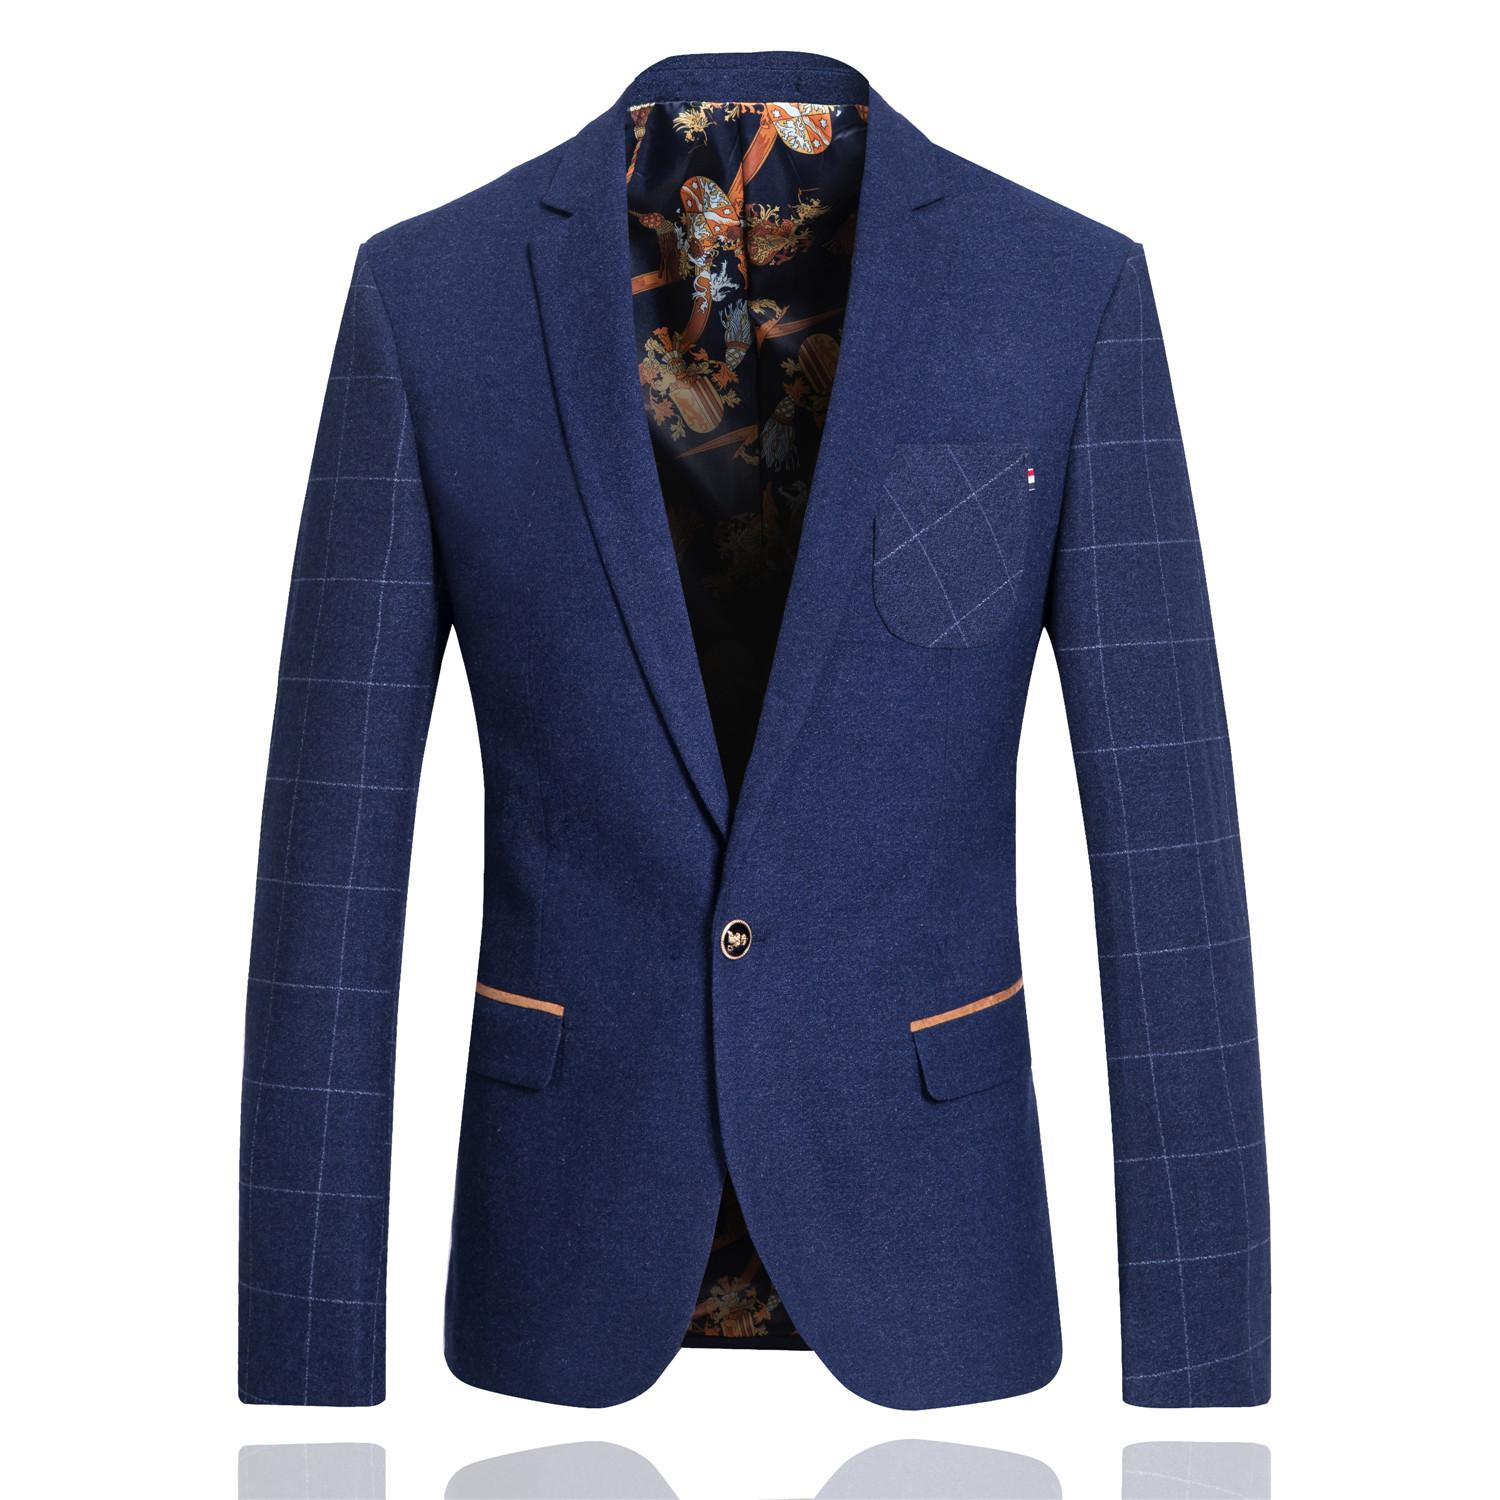 Find great deals on eBay for color blazers. Shop with confidence.